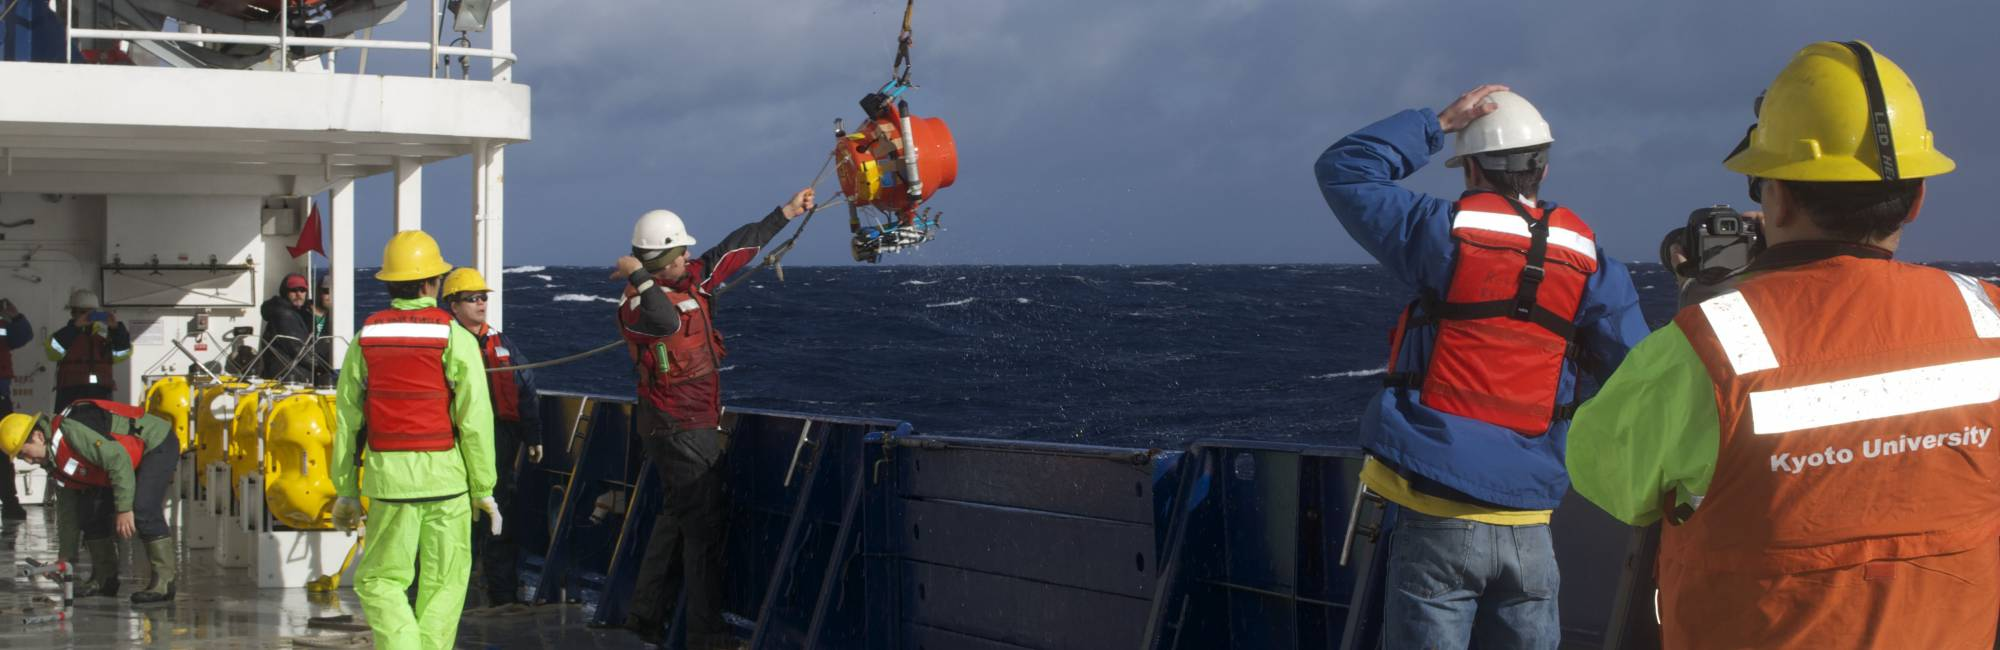 Scientists on the R/V Roger Revelle recover a Tohoku University seafloor absolute pressure gauge after one year on the seafloor offshore Gisborne, New Zealand. Photo credit: Elizabeth Brenner, Scripps Institution of Oceanography